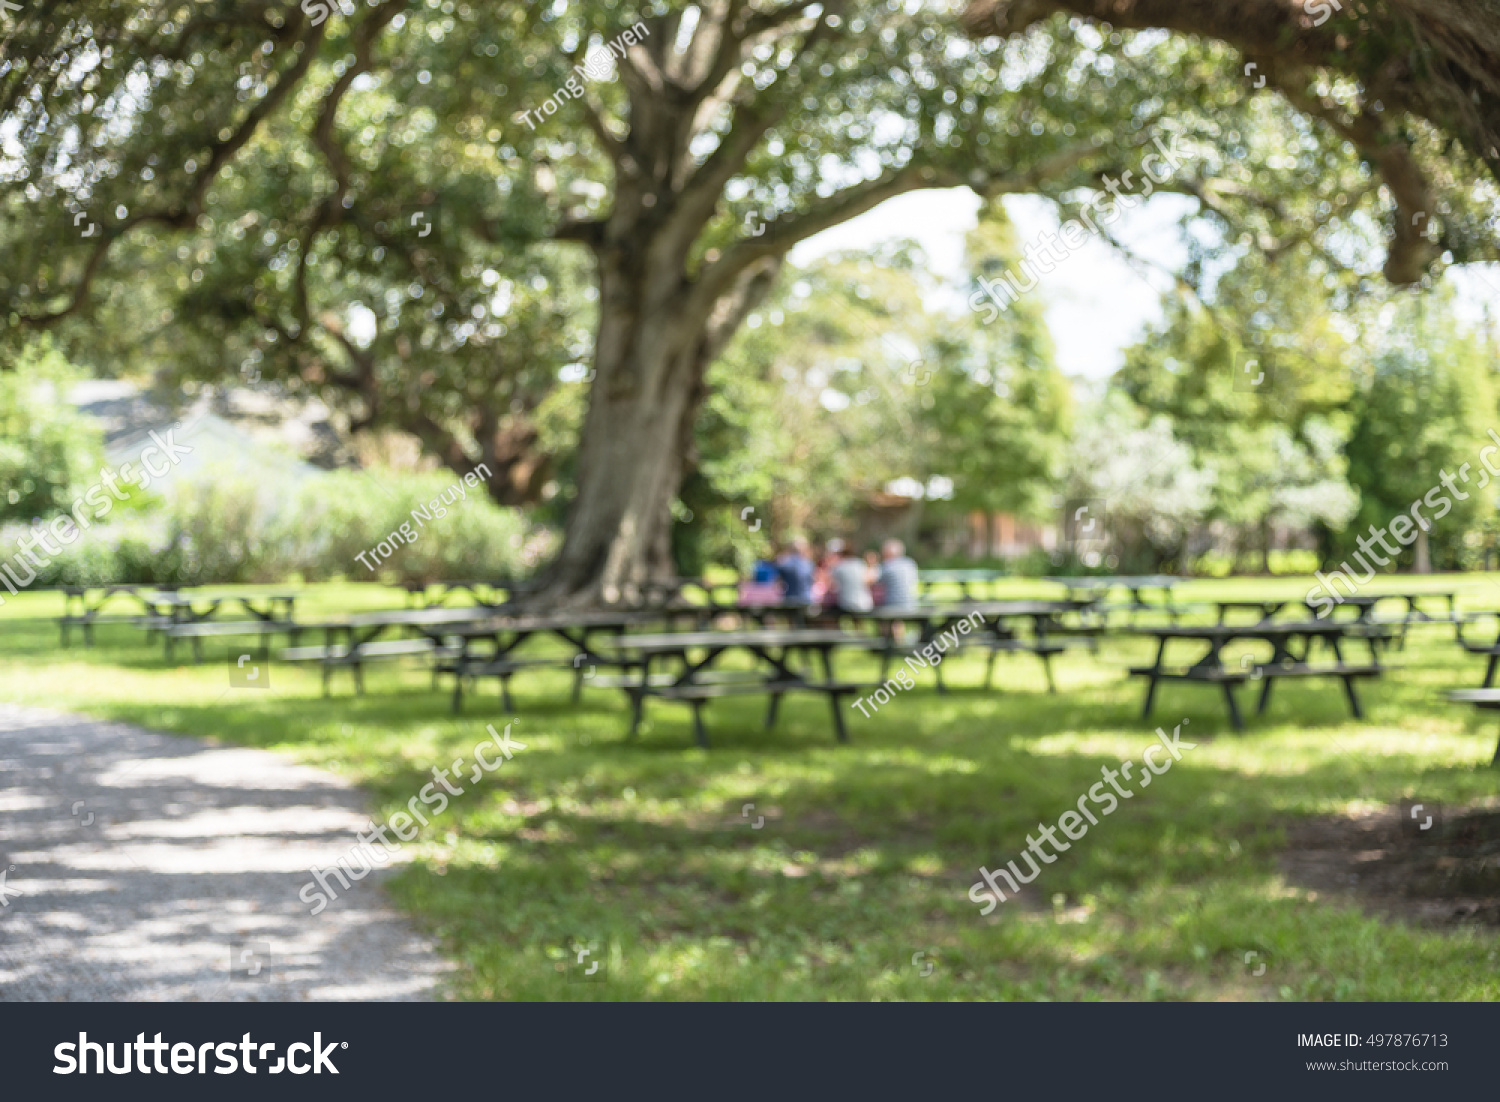 Blurred image of picnic tables, green… Stock Photo 497876713